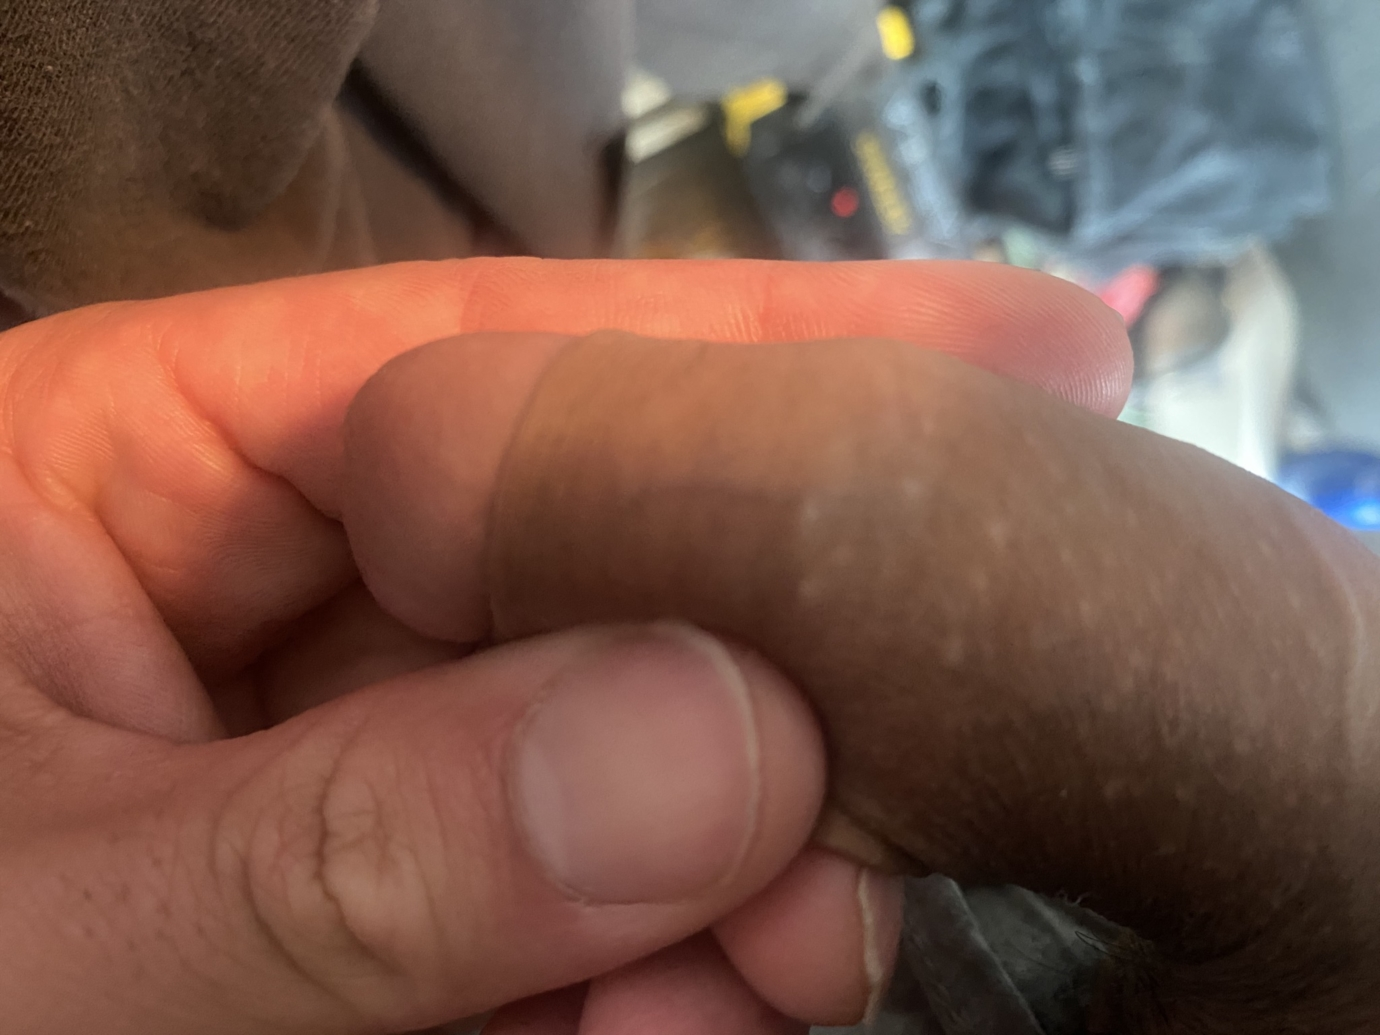 Small clear bumps on penis